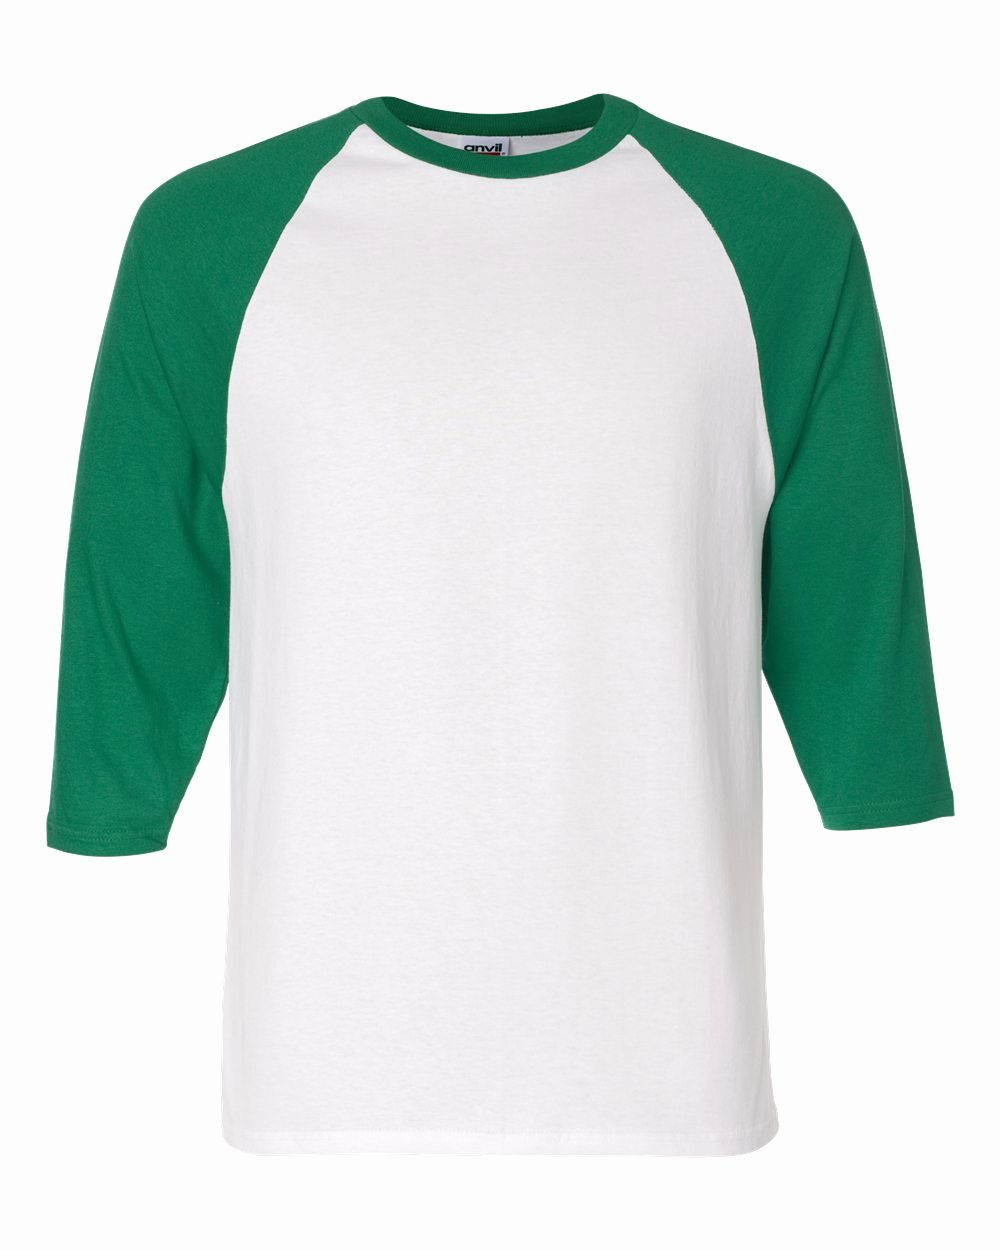 Green T Shirt Template Awesome the Gallery for Kelly Green T Shirt Template